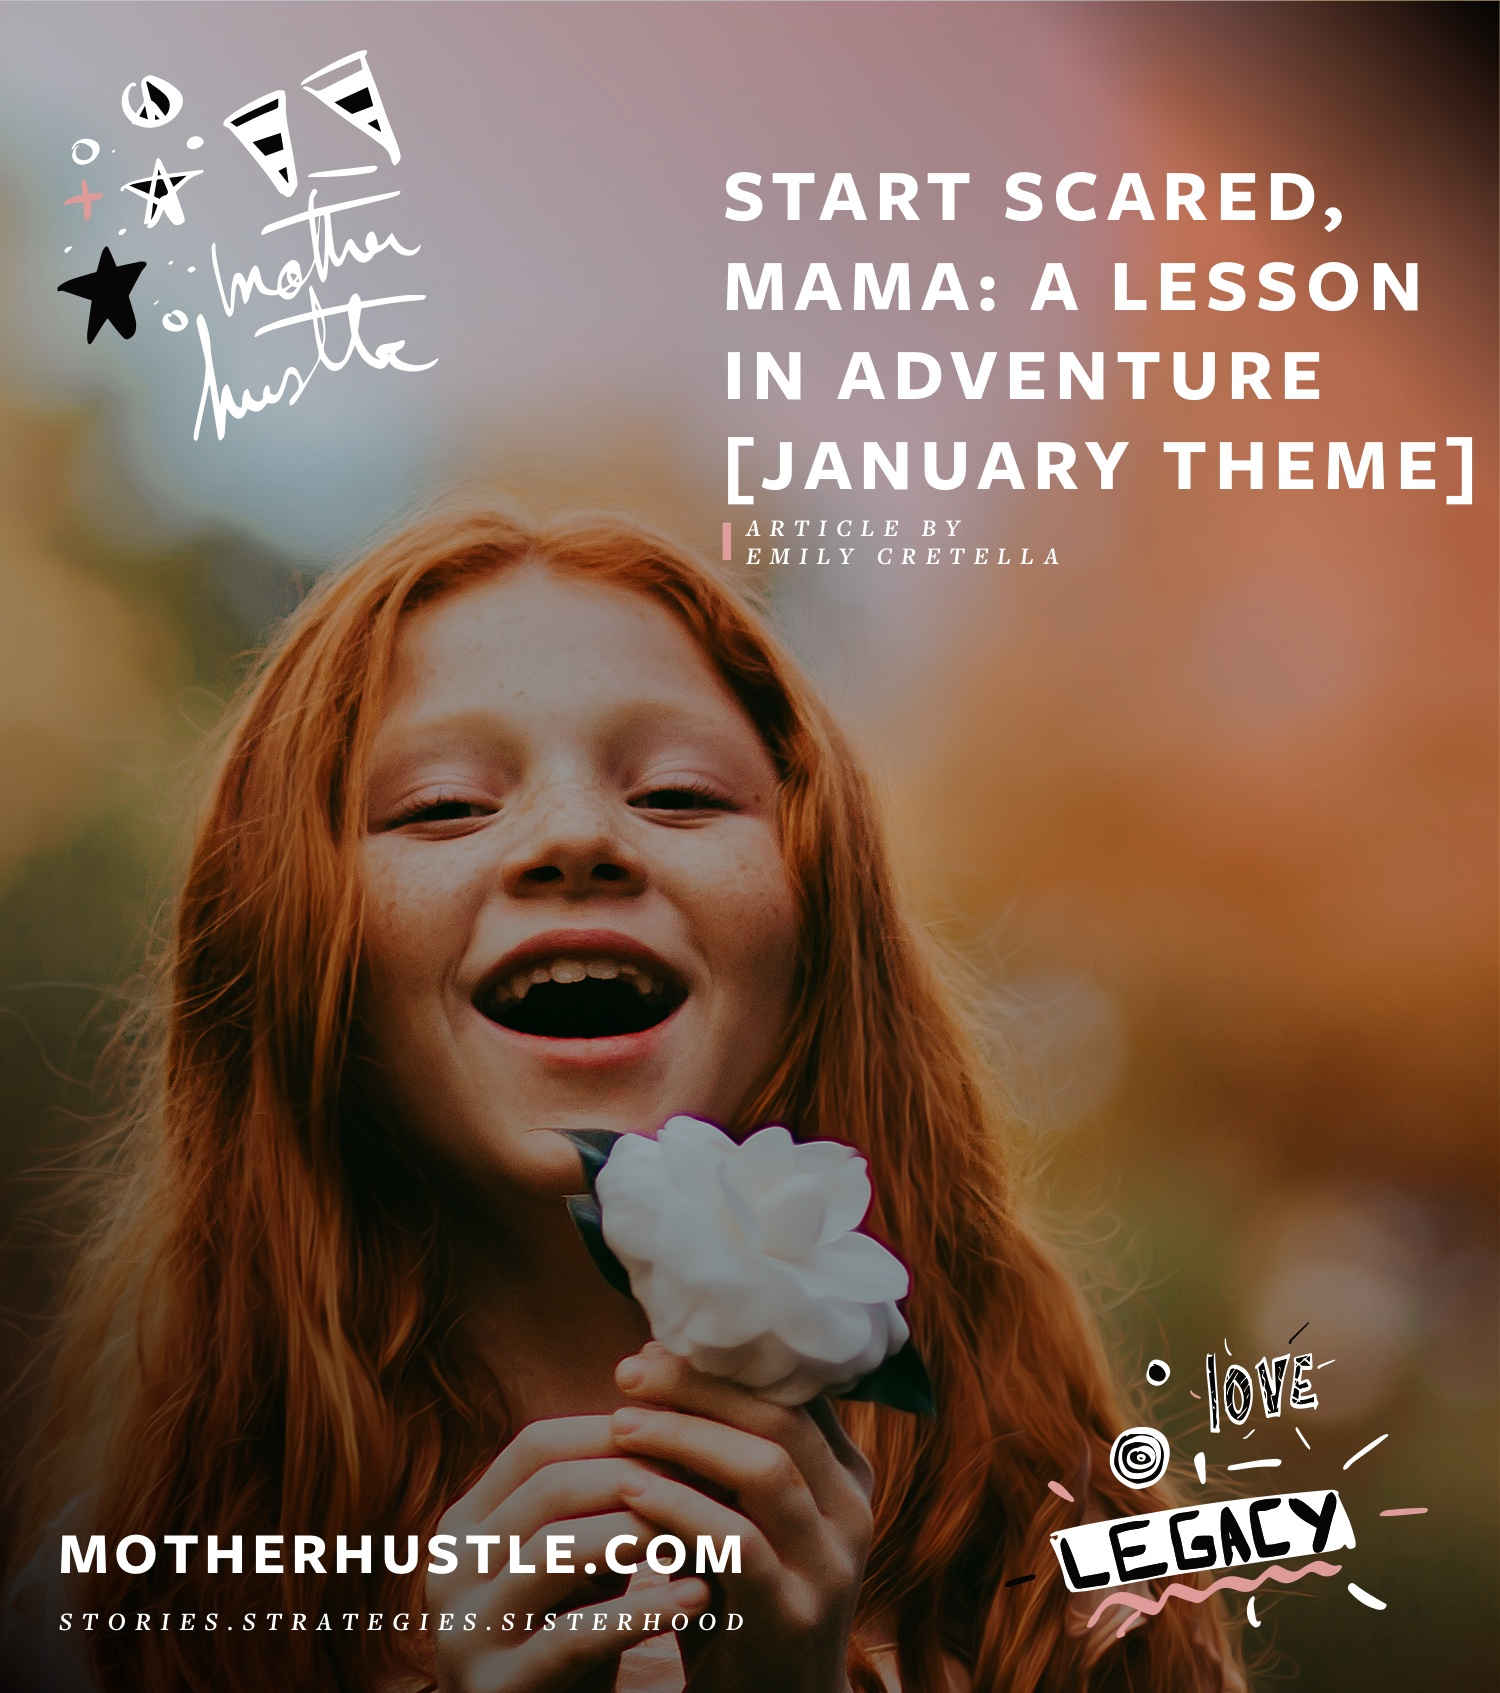 Start Scared, Mama-A Lesson in Adventure - by Emily Cretella for MotherHustle